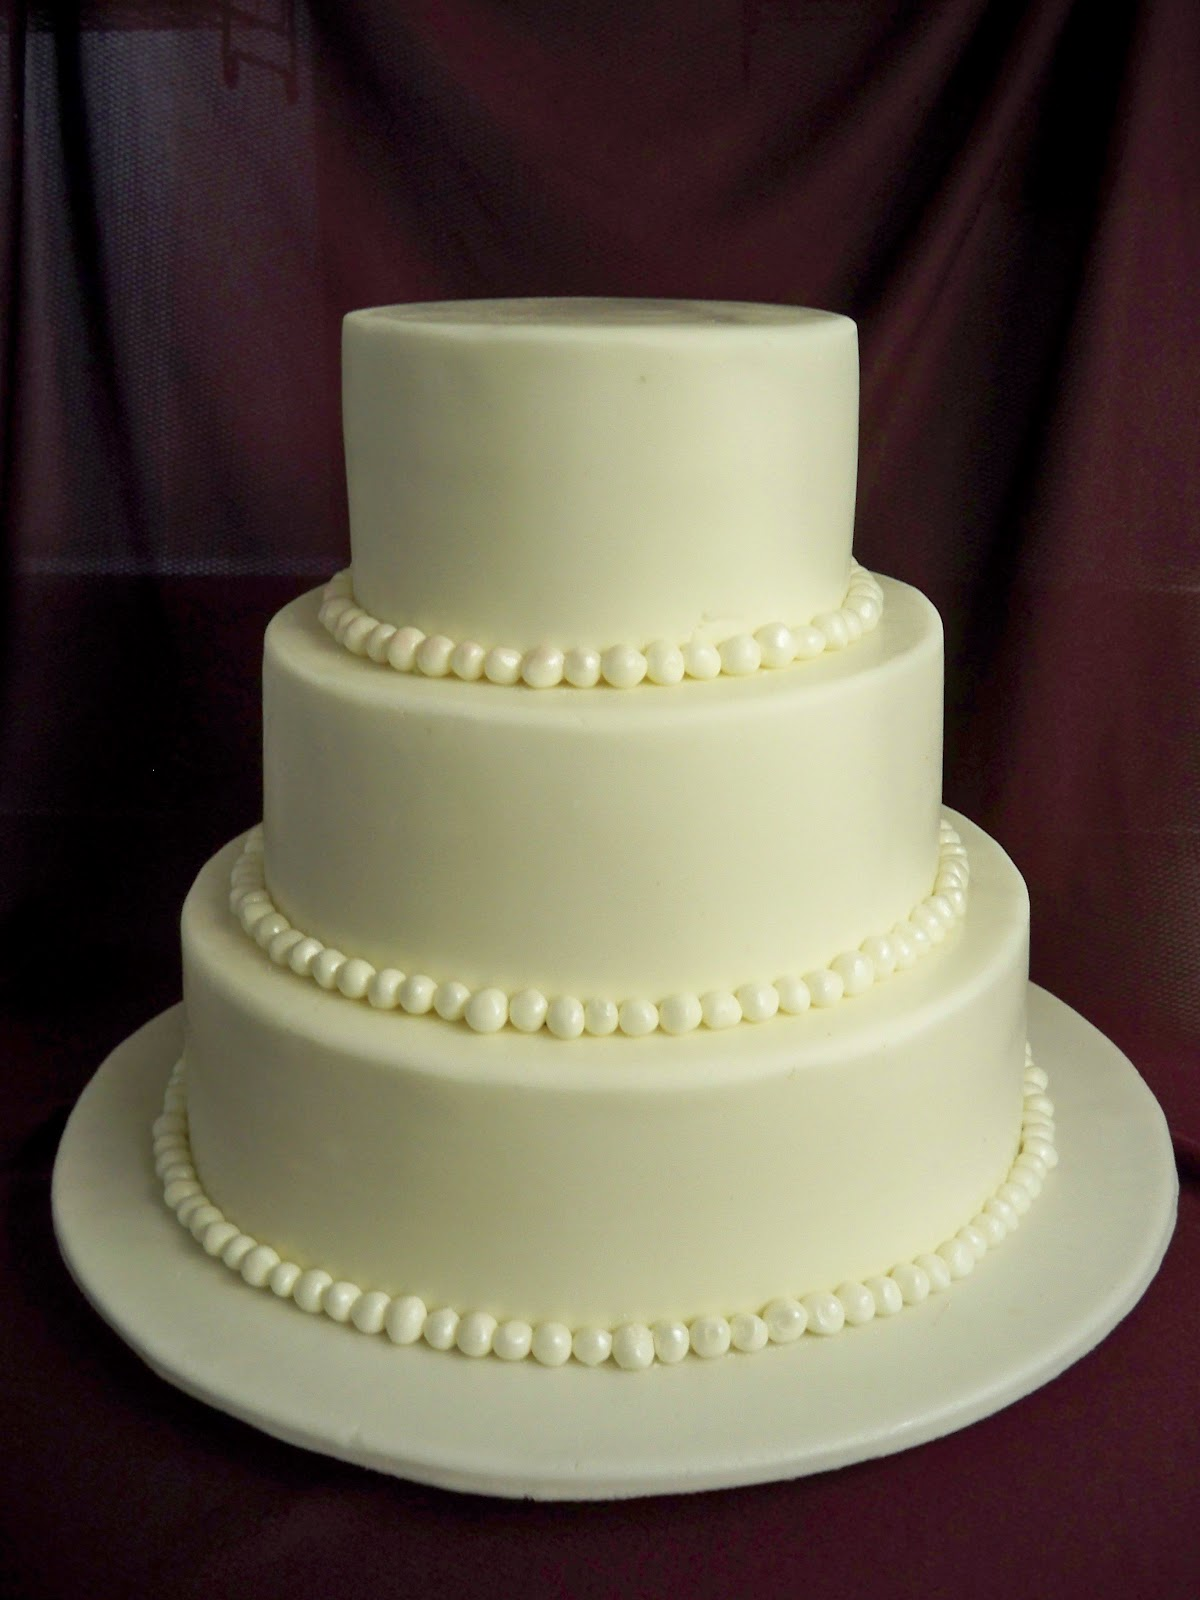 3 Tier Wedding Cake Tyler Living - 3 Tier Wedding Cakes